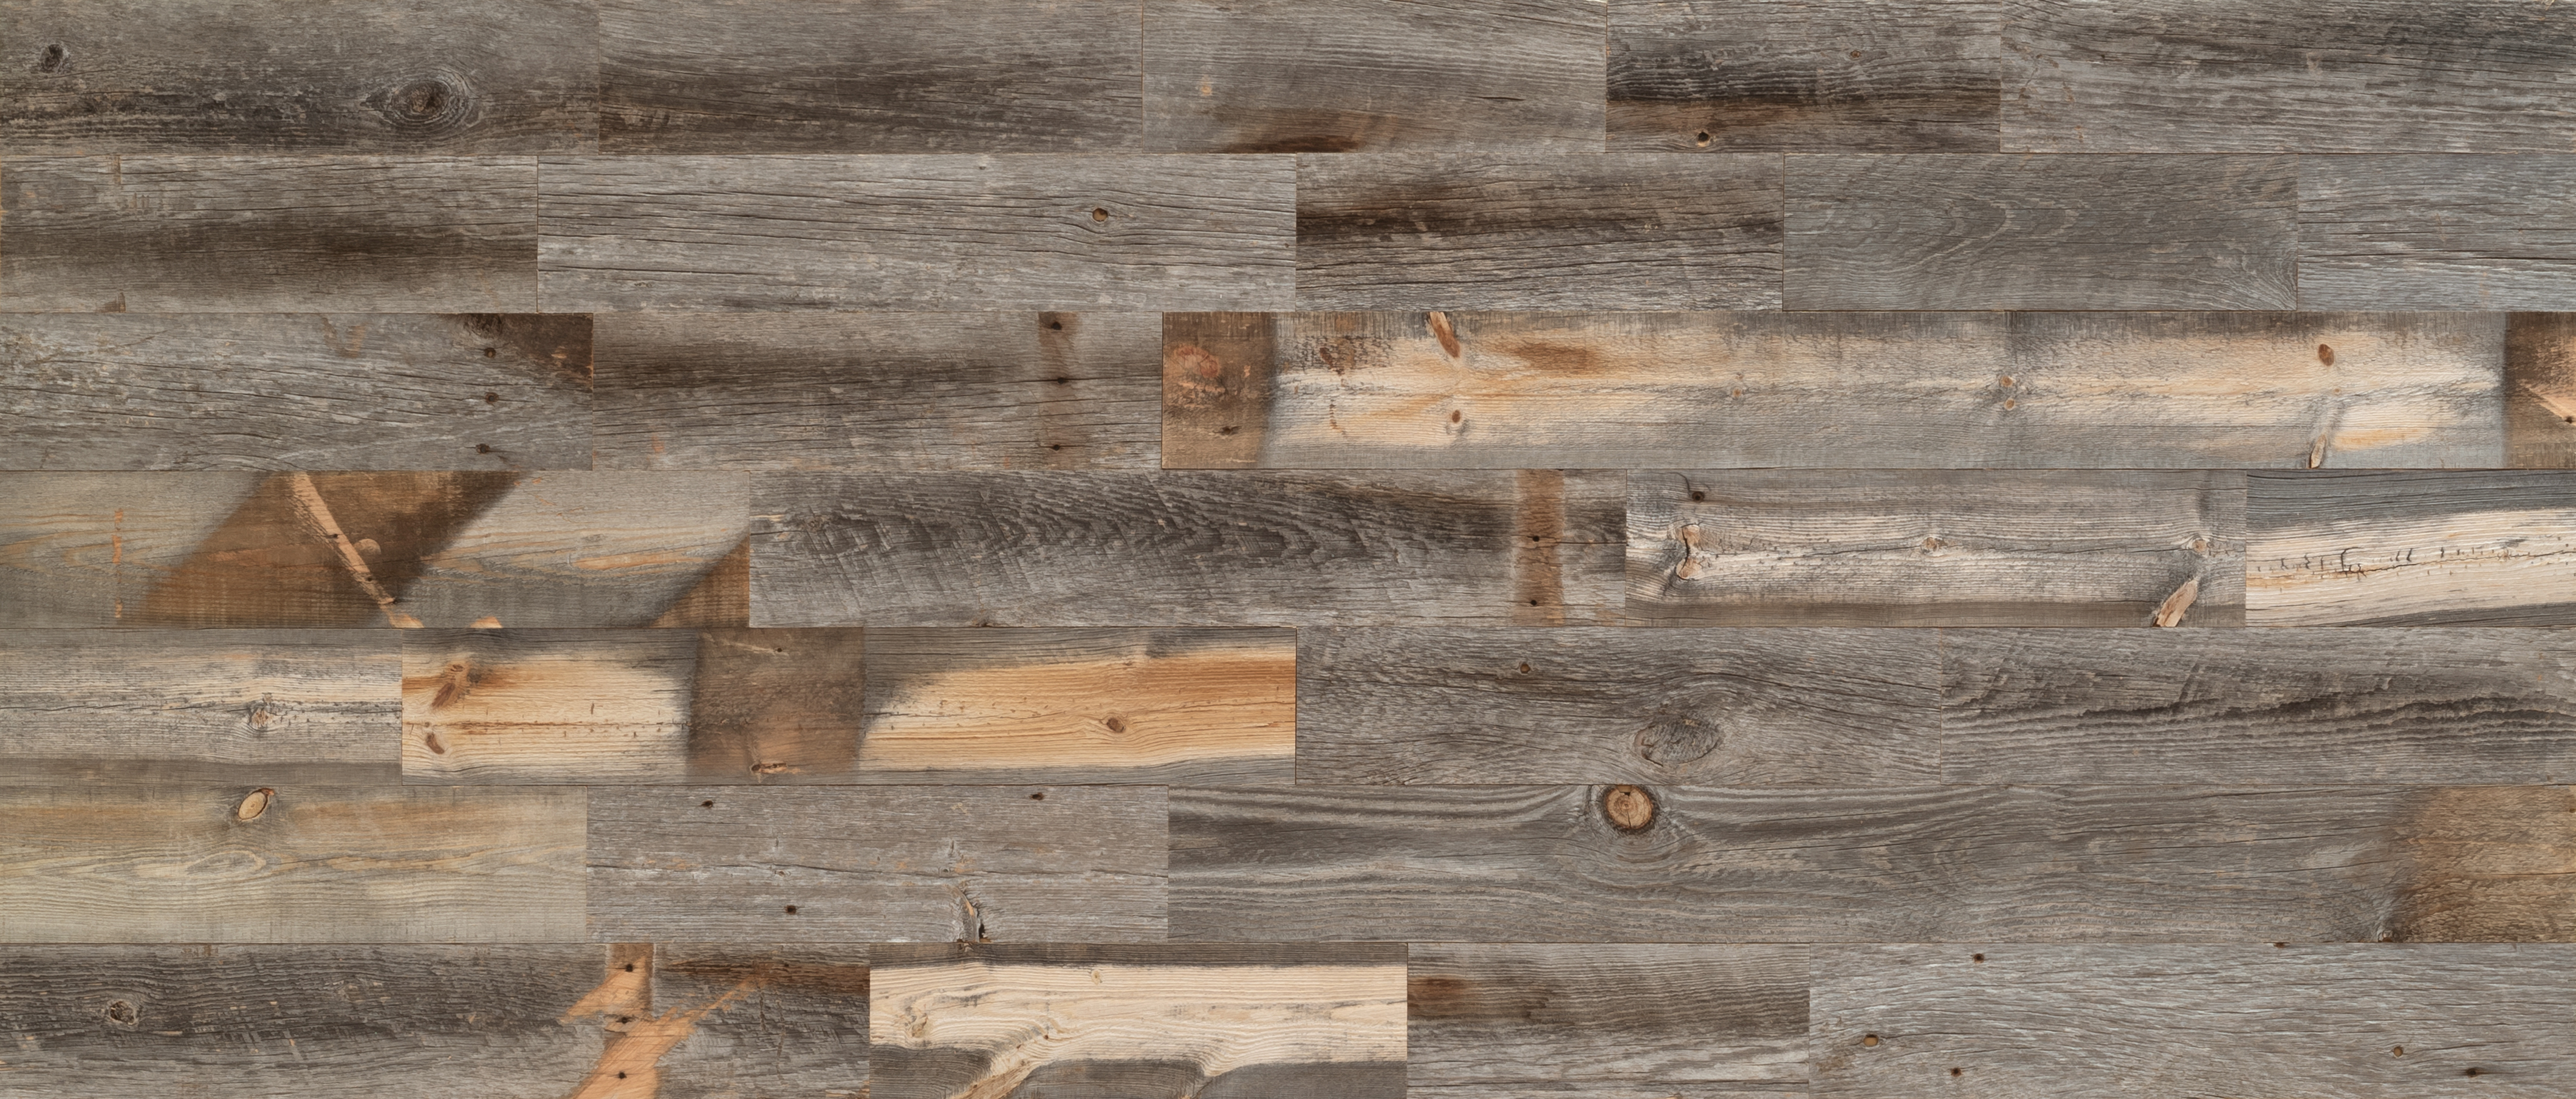 Stikwood Reclaimed Weathered Wood material explorer   real reclaimed barnwood pine peel and stick wood wall and ceiling planks with silver, gray, tan and brown colors.